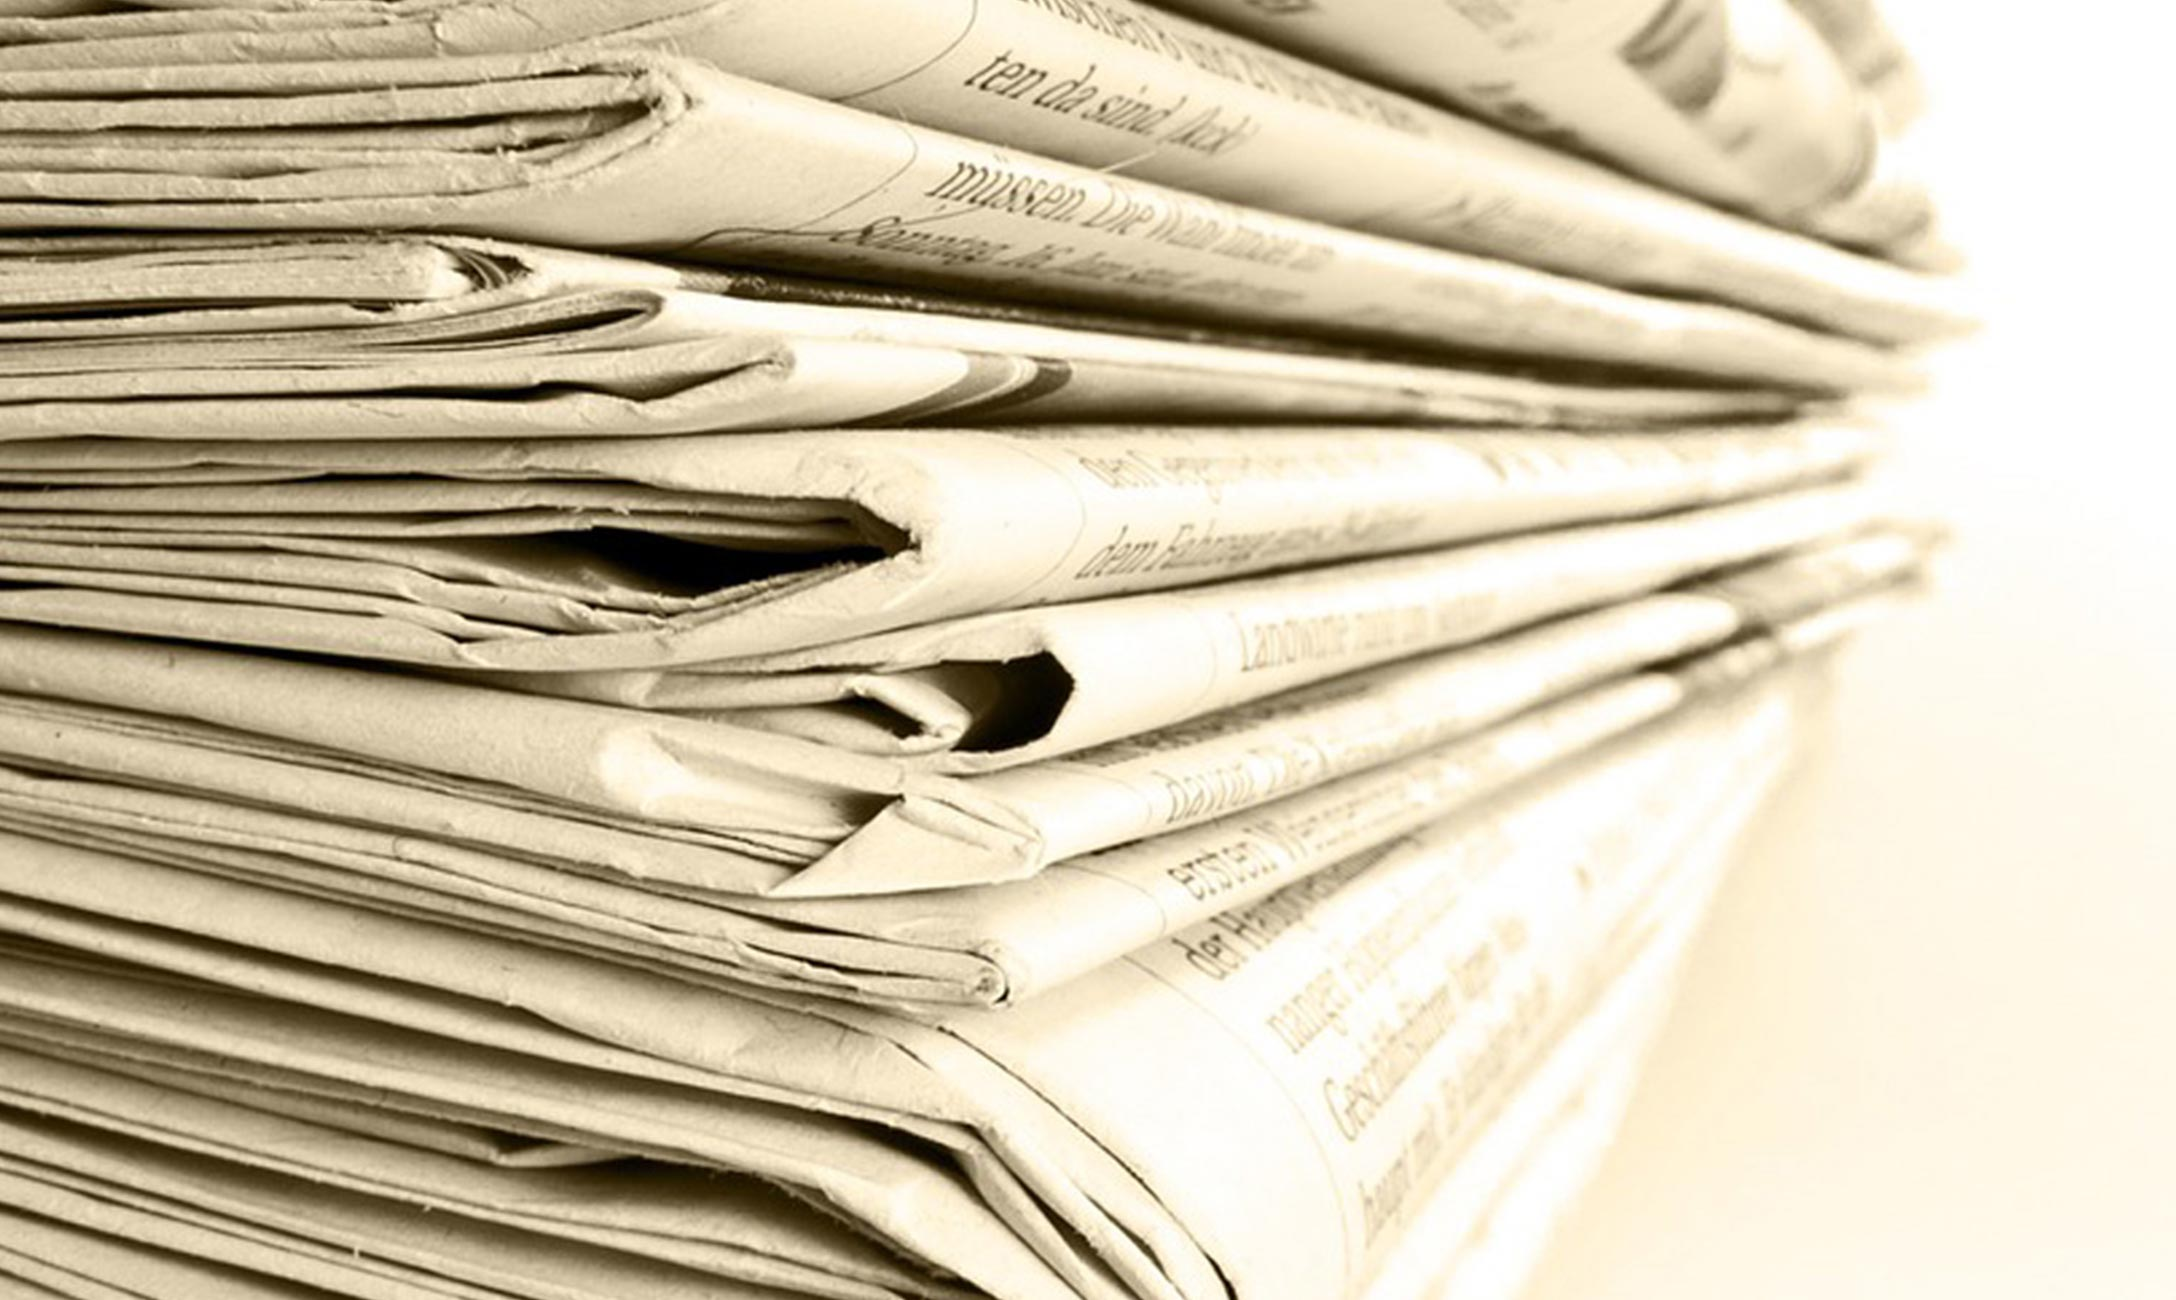 Stock photo of newspaper stack.